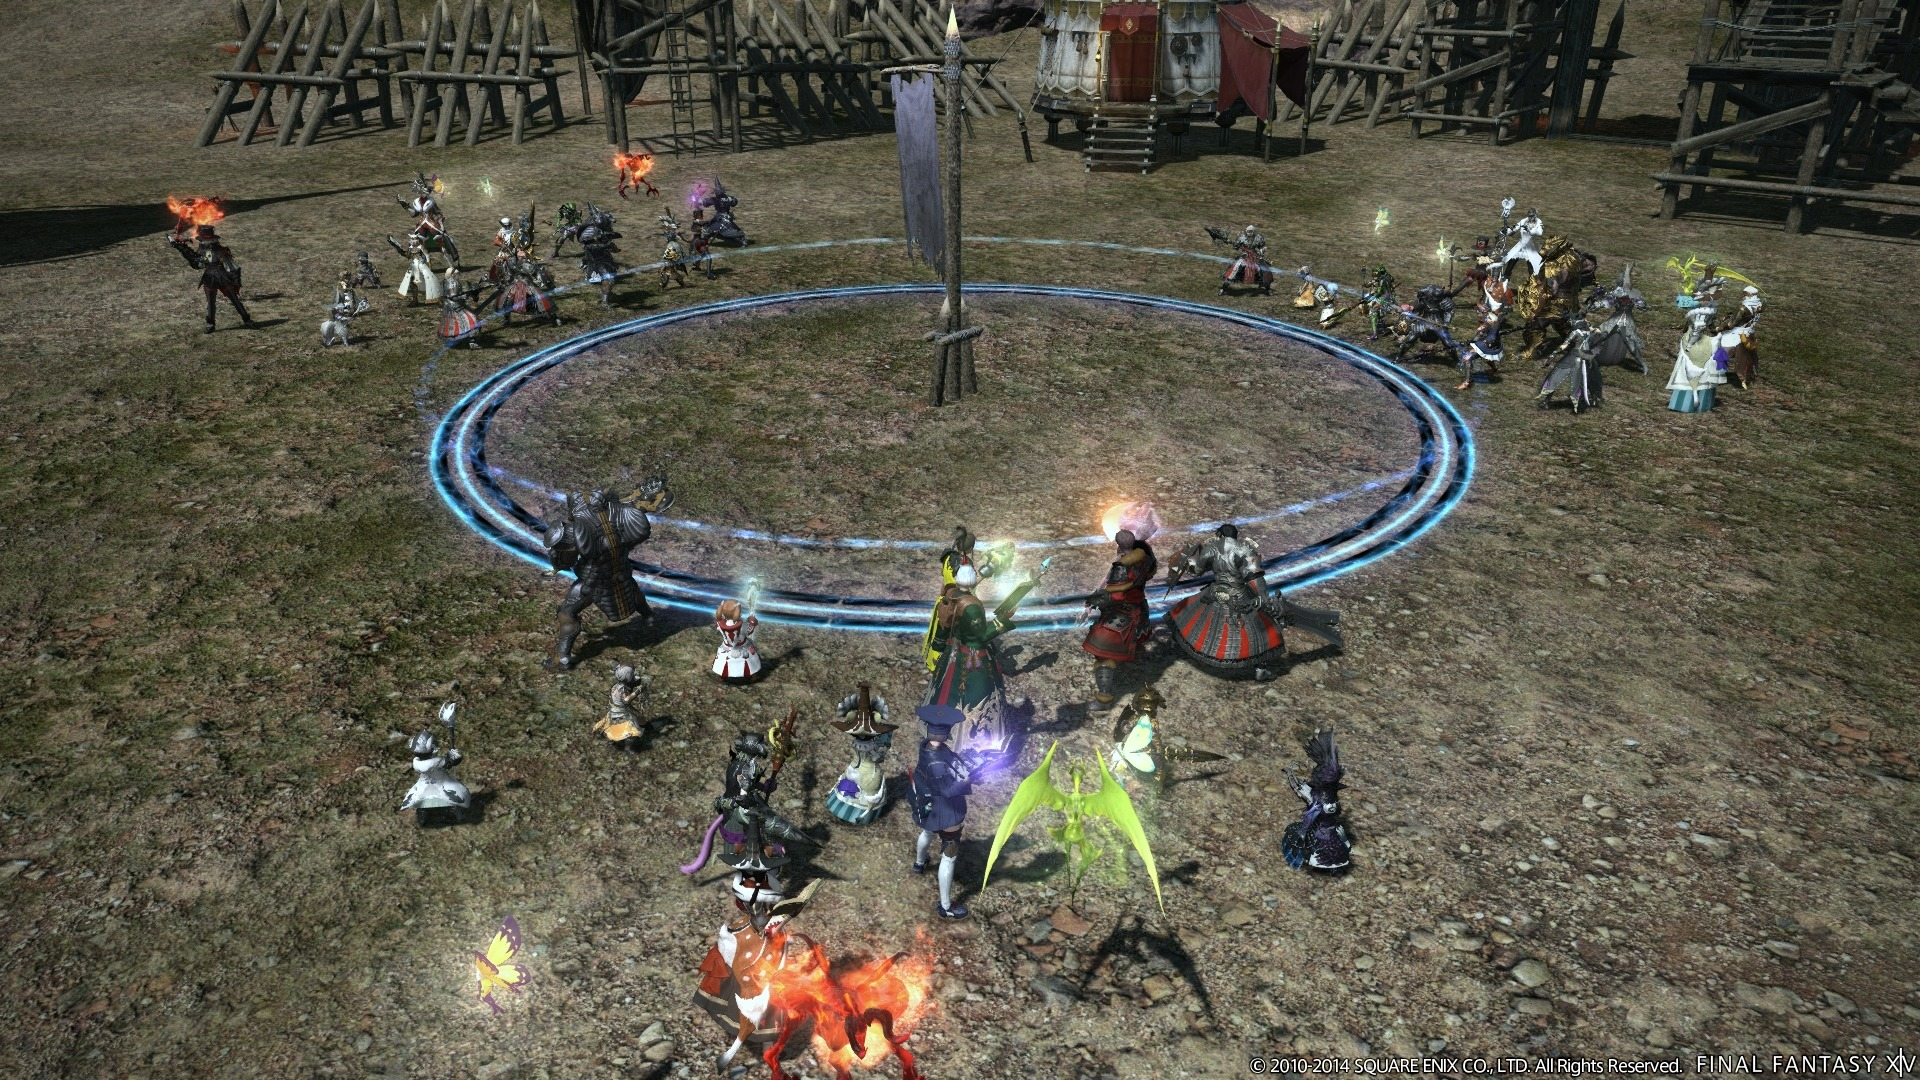 20 Things You Might Not Know About The Final Fantasy XIV